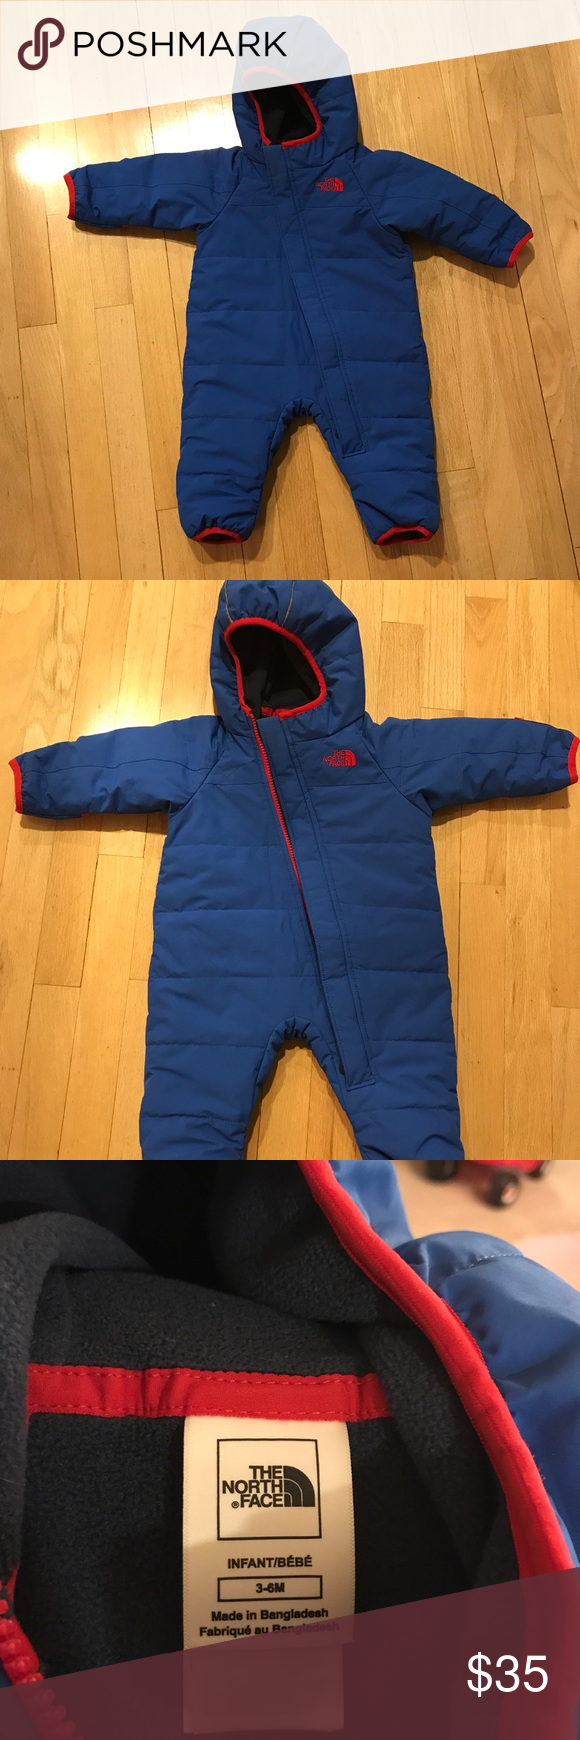 Infant North Face Jacket Onesie North Face Jacket Clothes Design The North Face [ 1740 x 580 Pixel ]